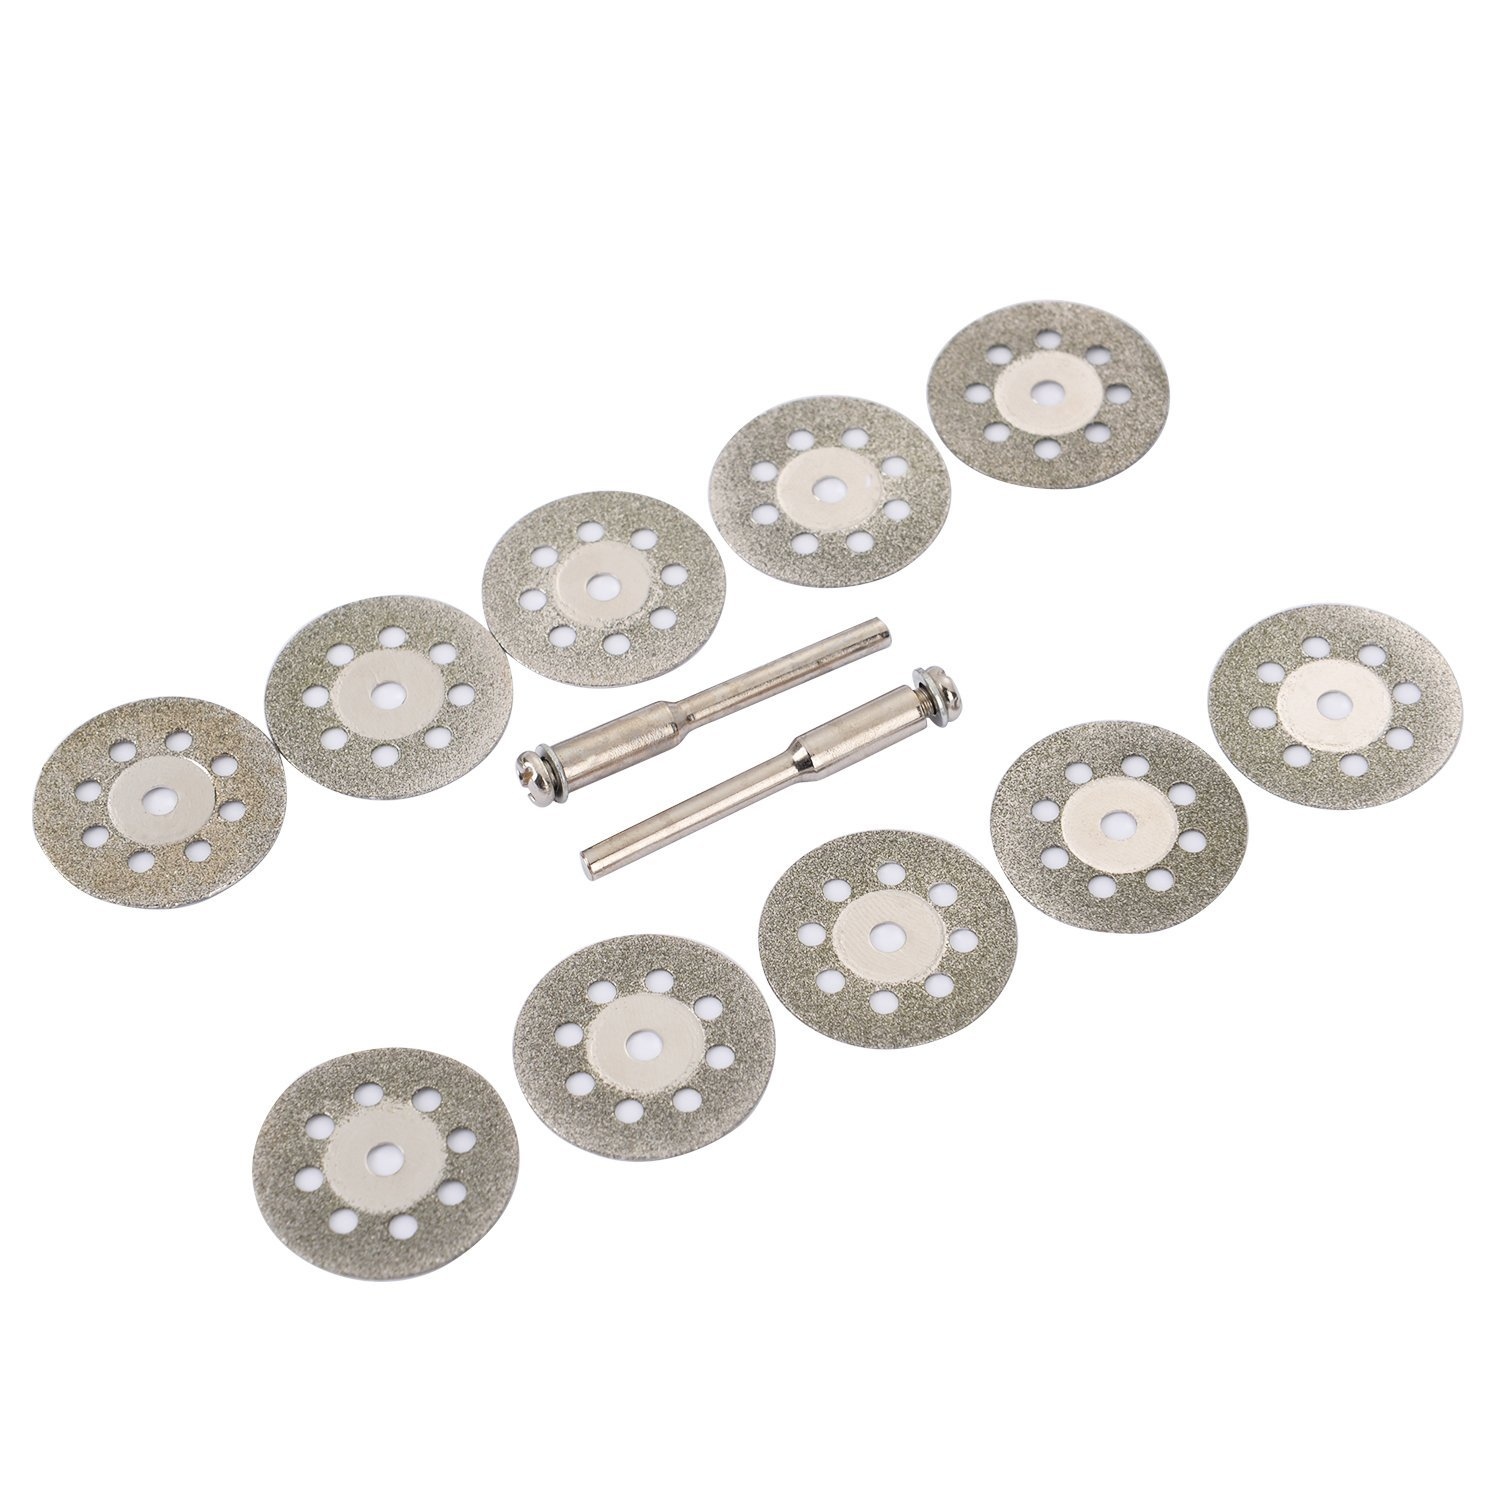 10pcs set 22mm Mini Diamond Saw Blade Silver Cutting Discs With 2X Connecting Shank For Dremel Drill Fit Rotary Tool D30 in Abrasive Tools from Tools